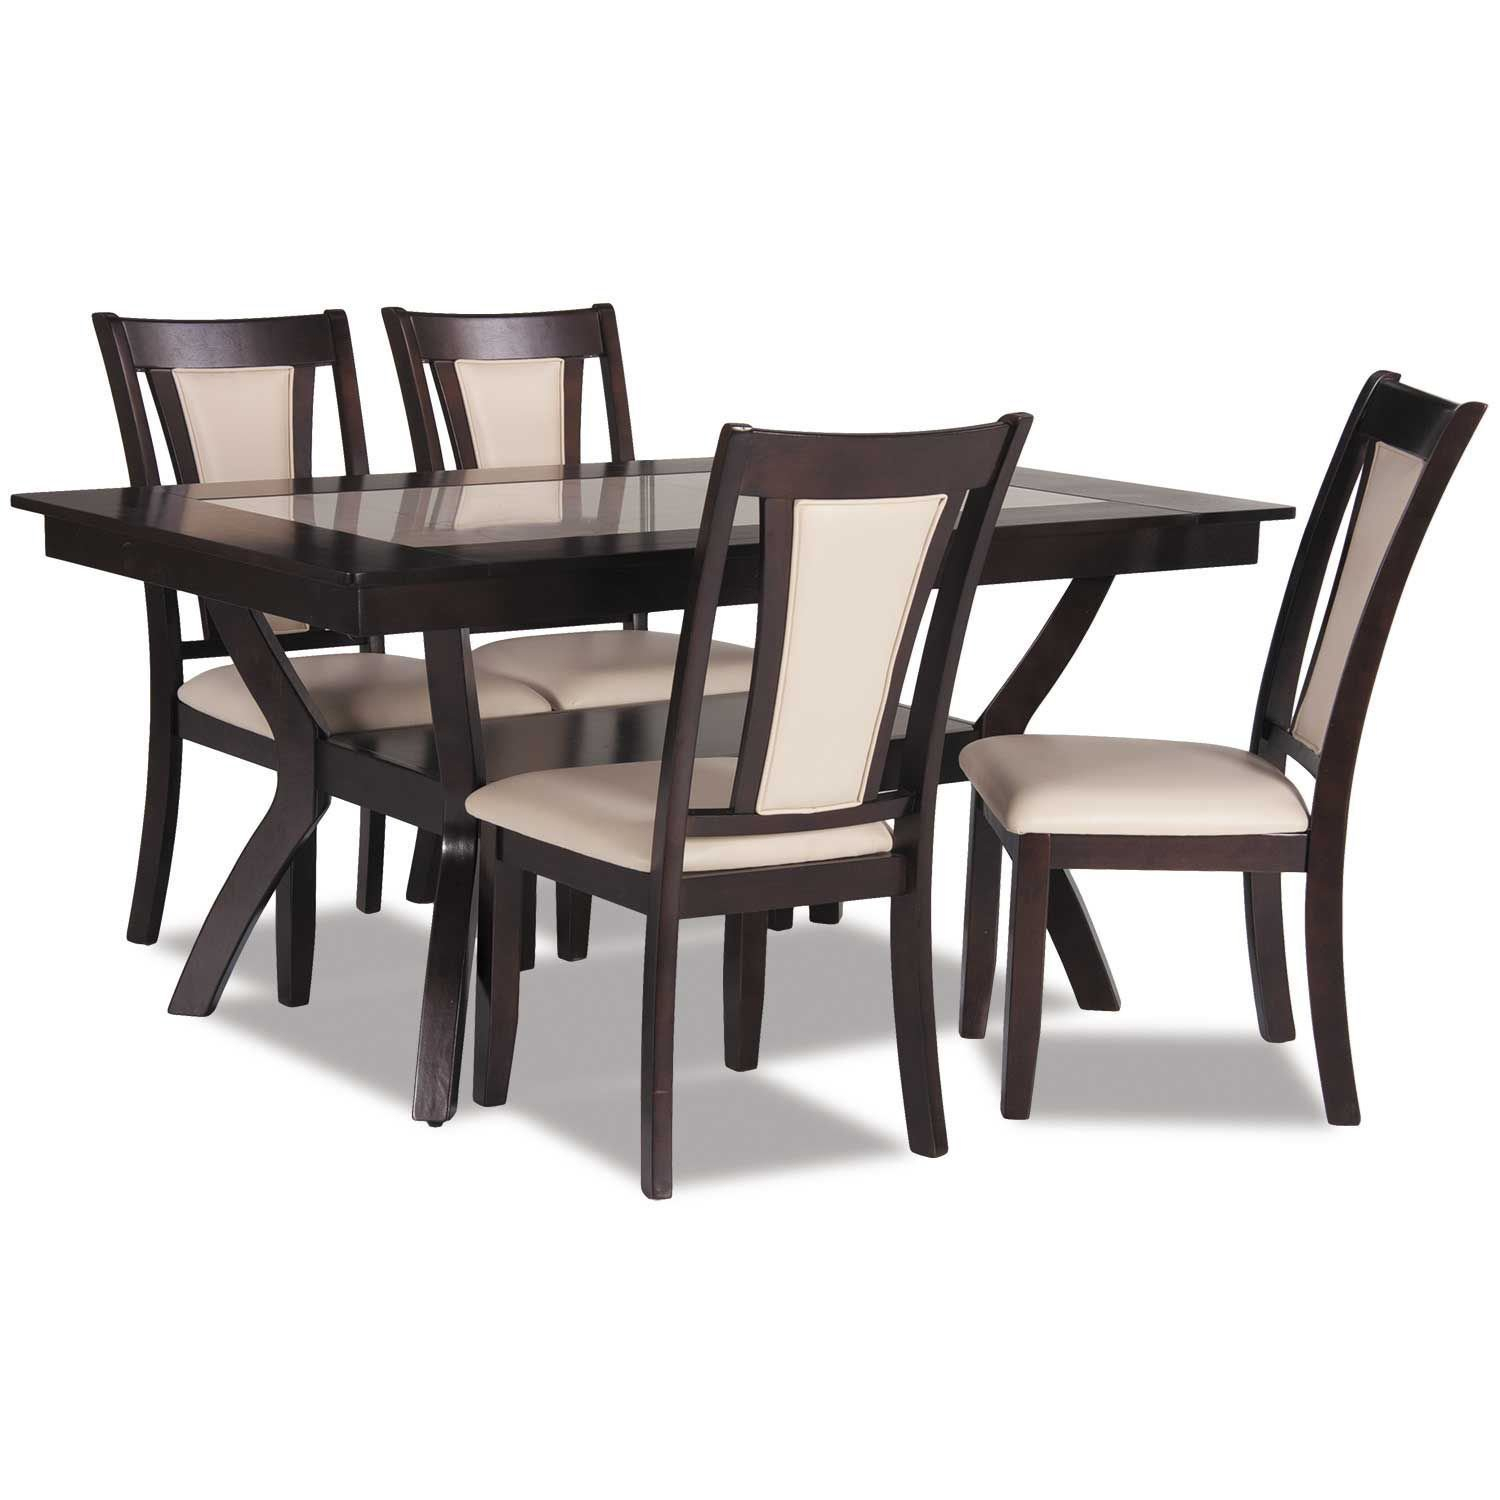 Reno 5 Piece Dining Set With Recent 5 Piece Dining Sets (View 20 of 20)